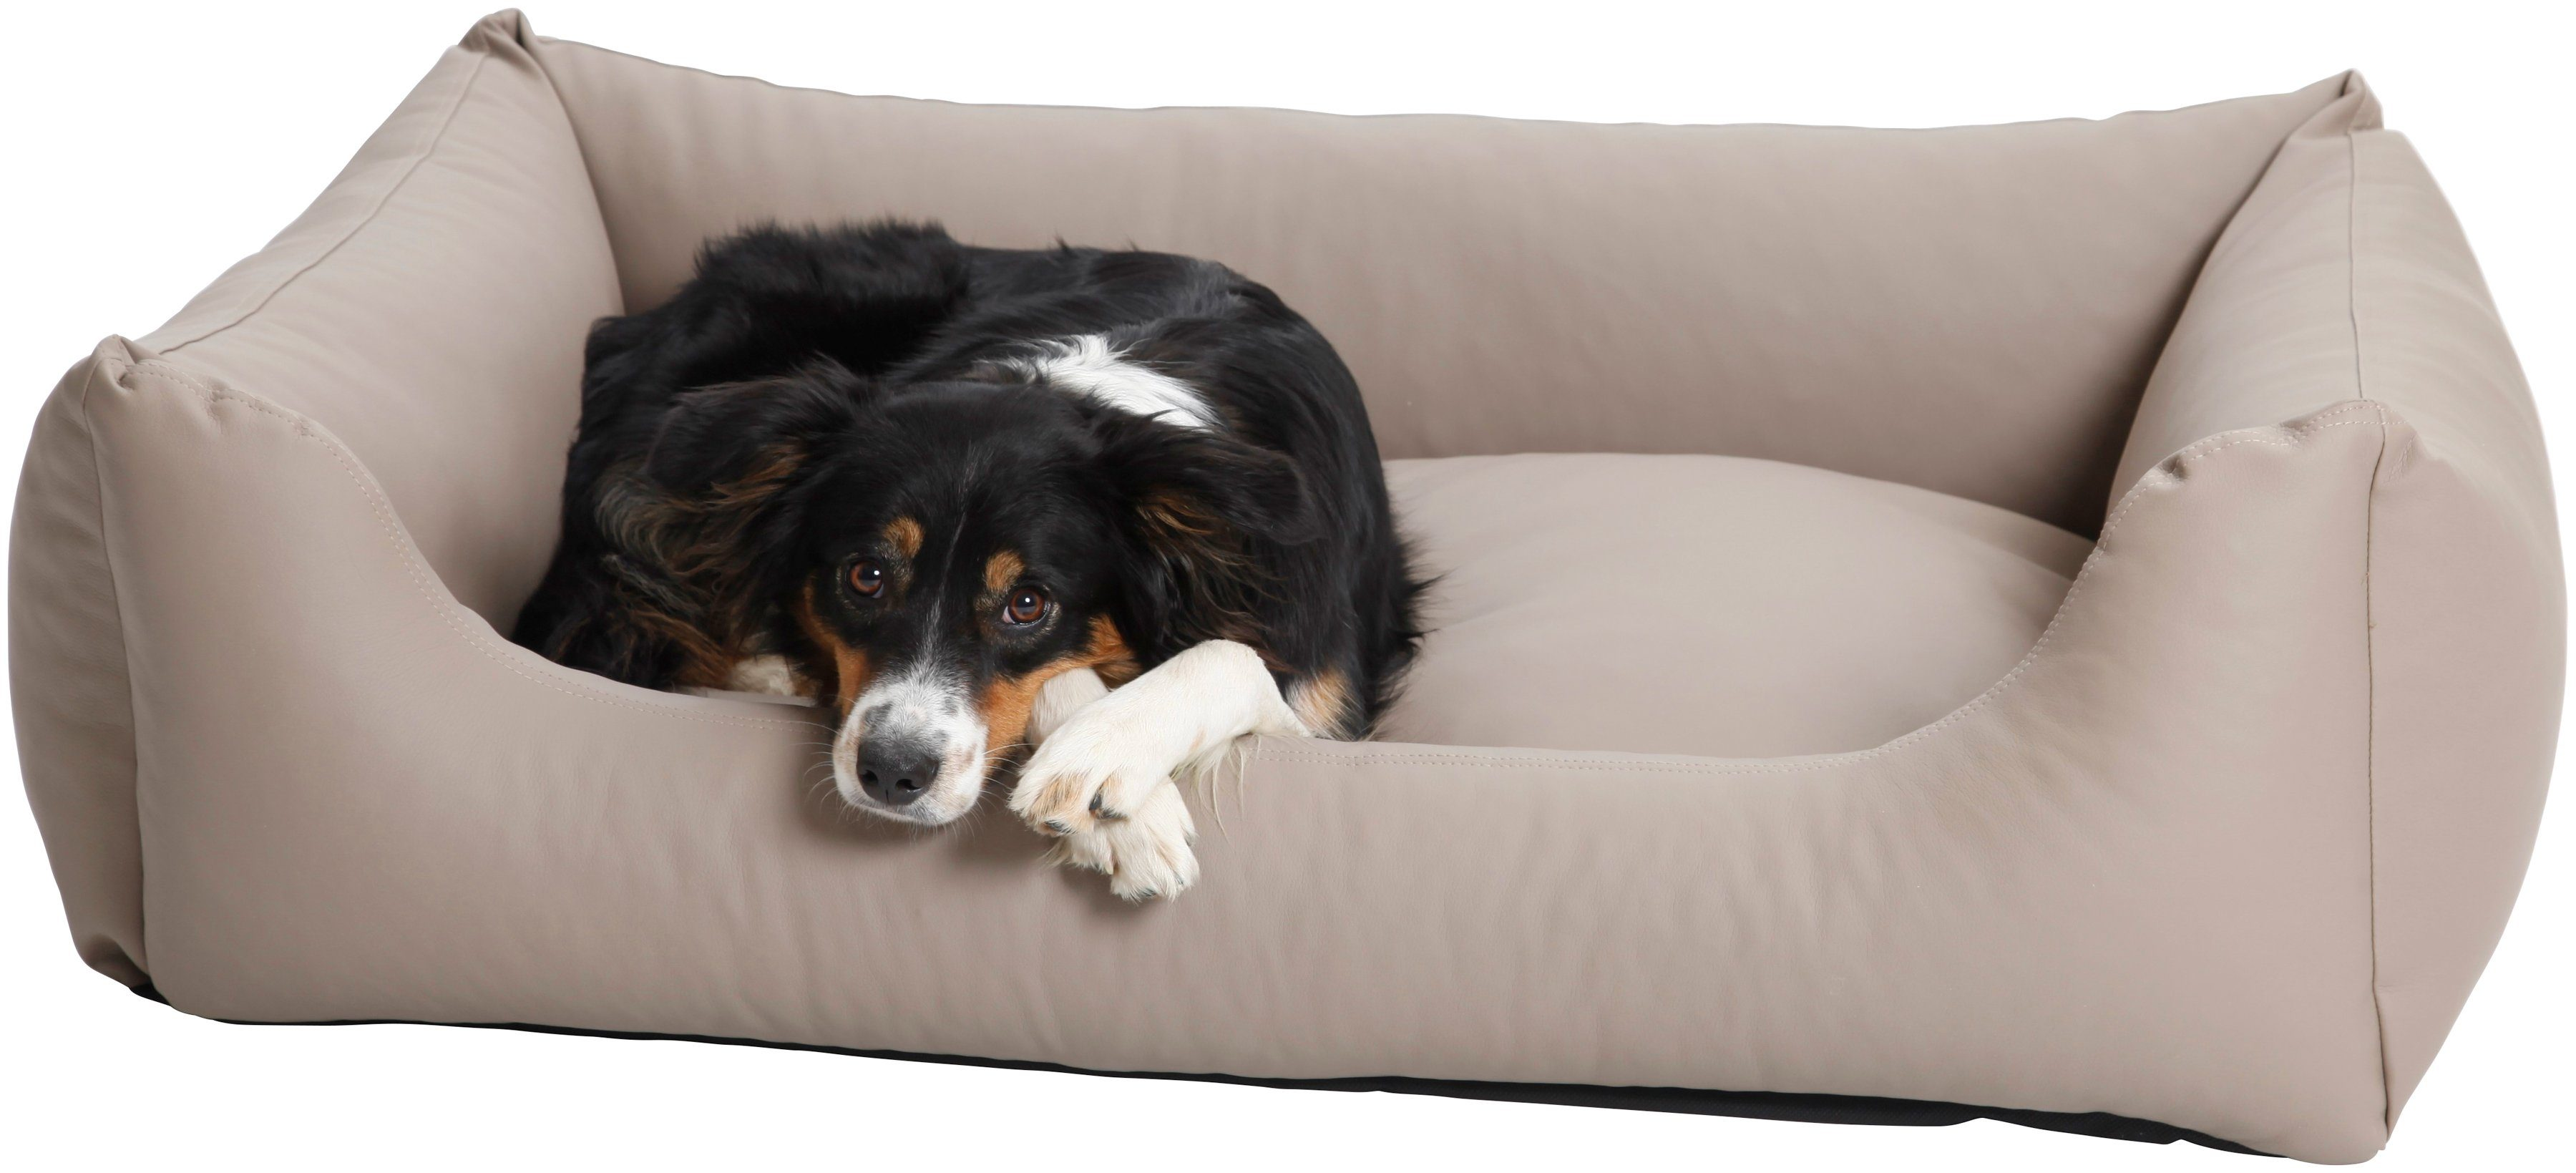 Dogs In The City Hundesofa und Katzensofa »Saddle«, B/T/H: 90/70/28 cm, Sand